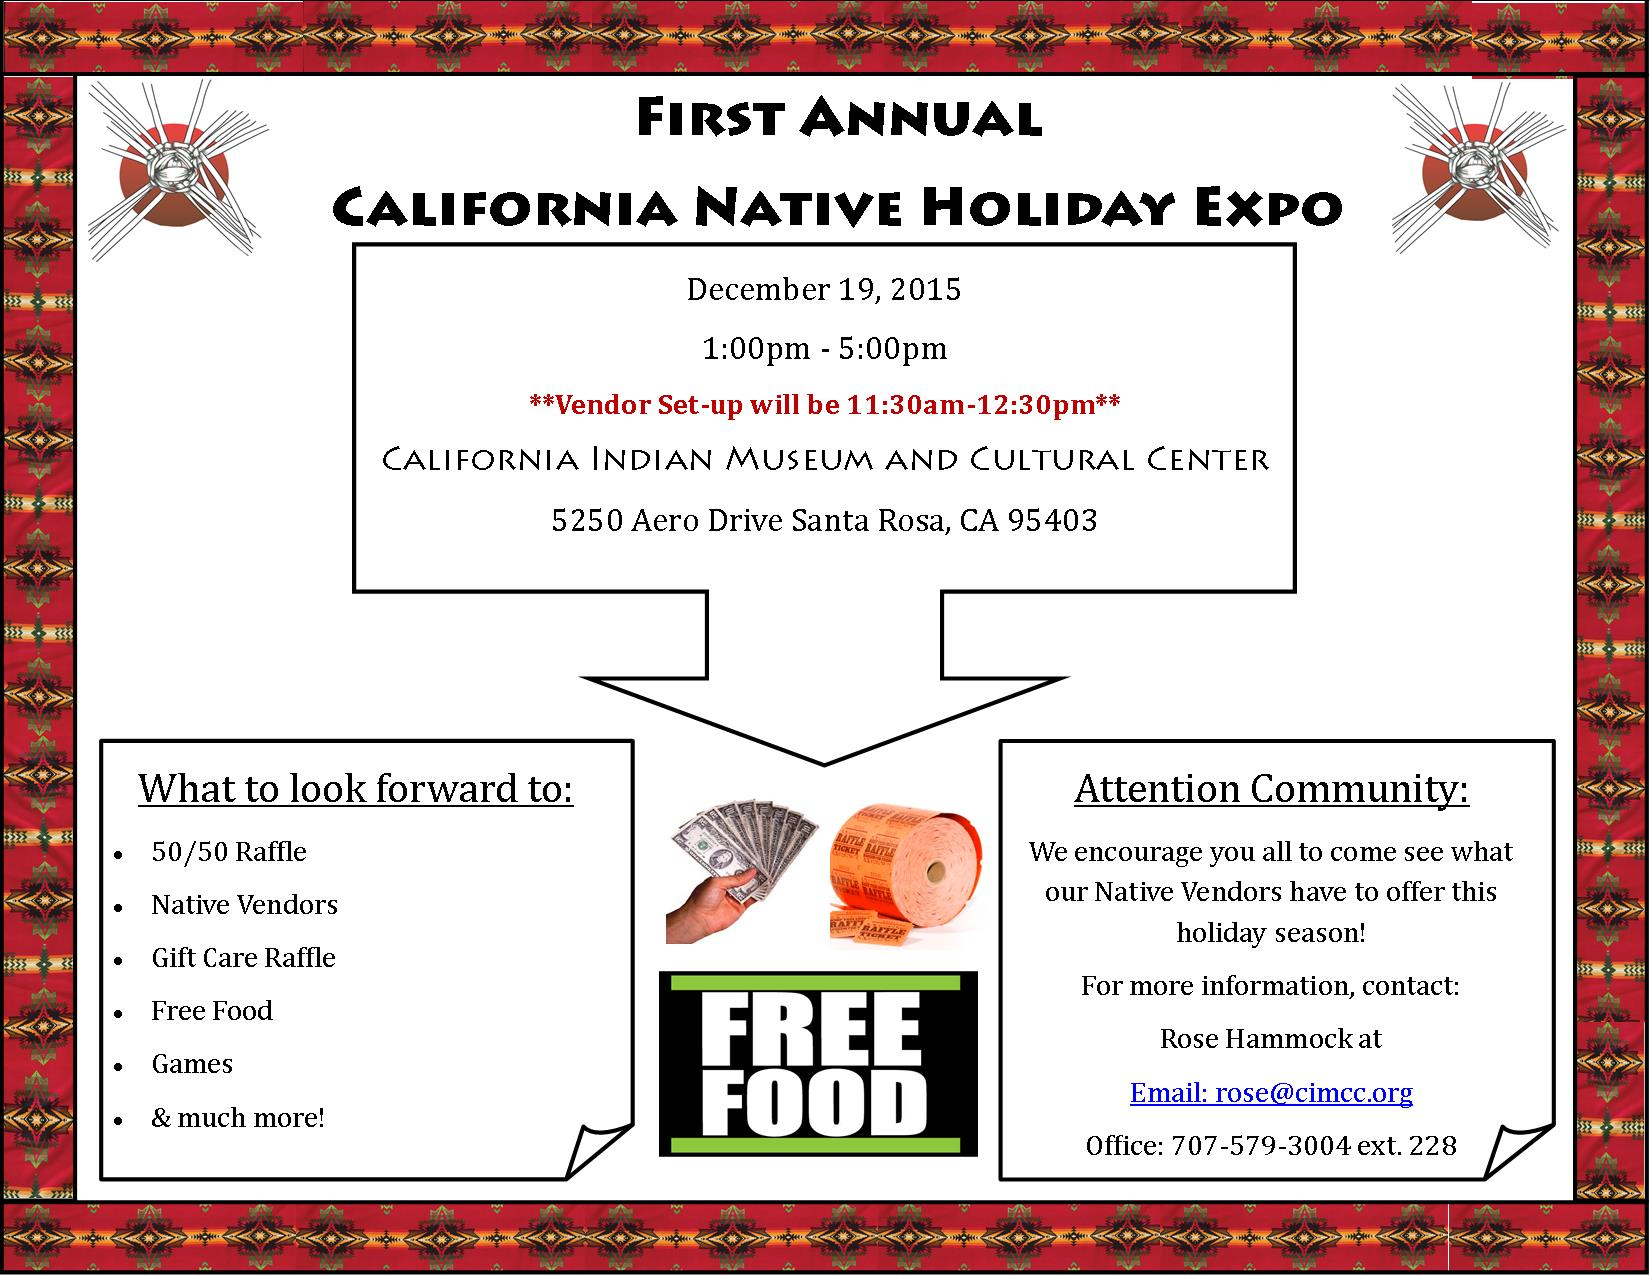 California Native Holiday Expo flyer